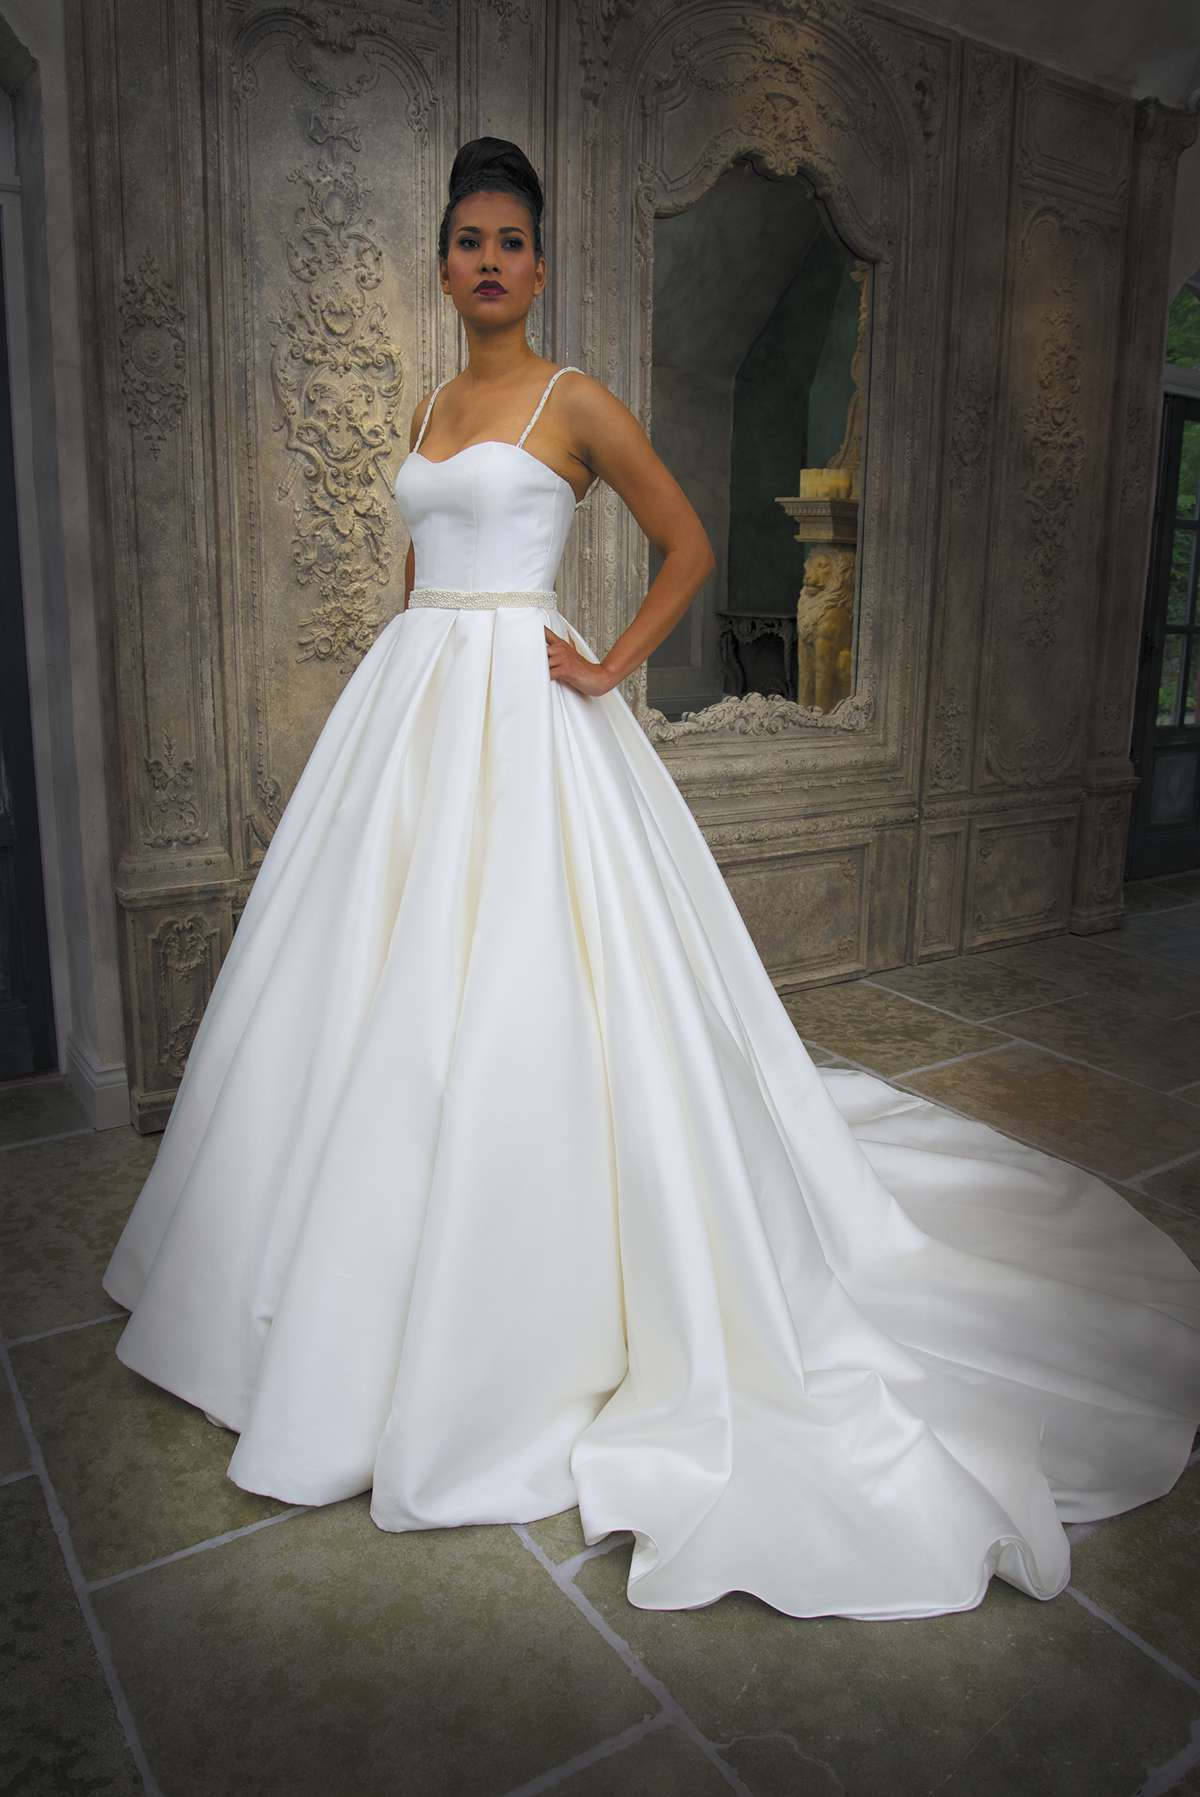 Glamorous designs from grace philips love our wedding for Circle skirt wedding dress